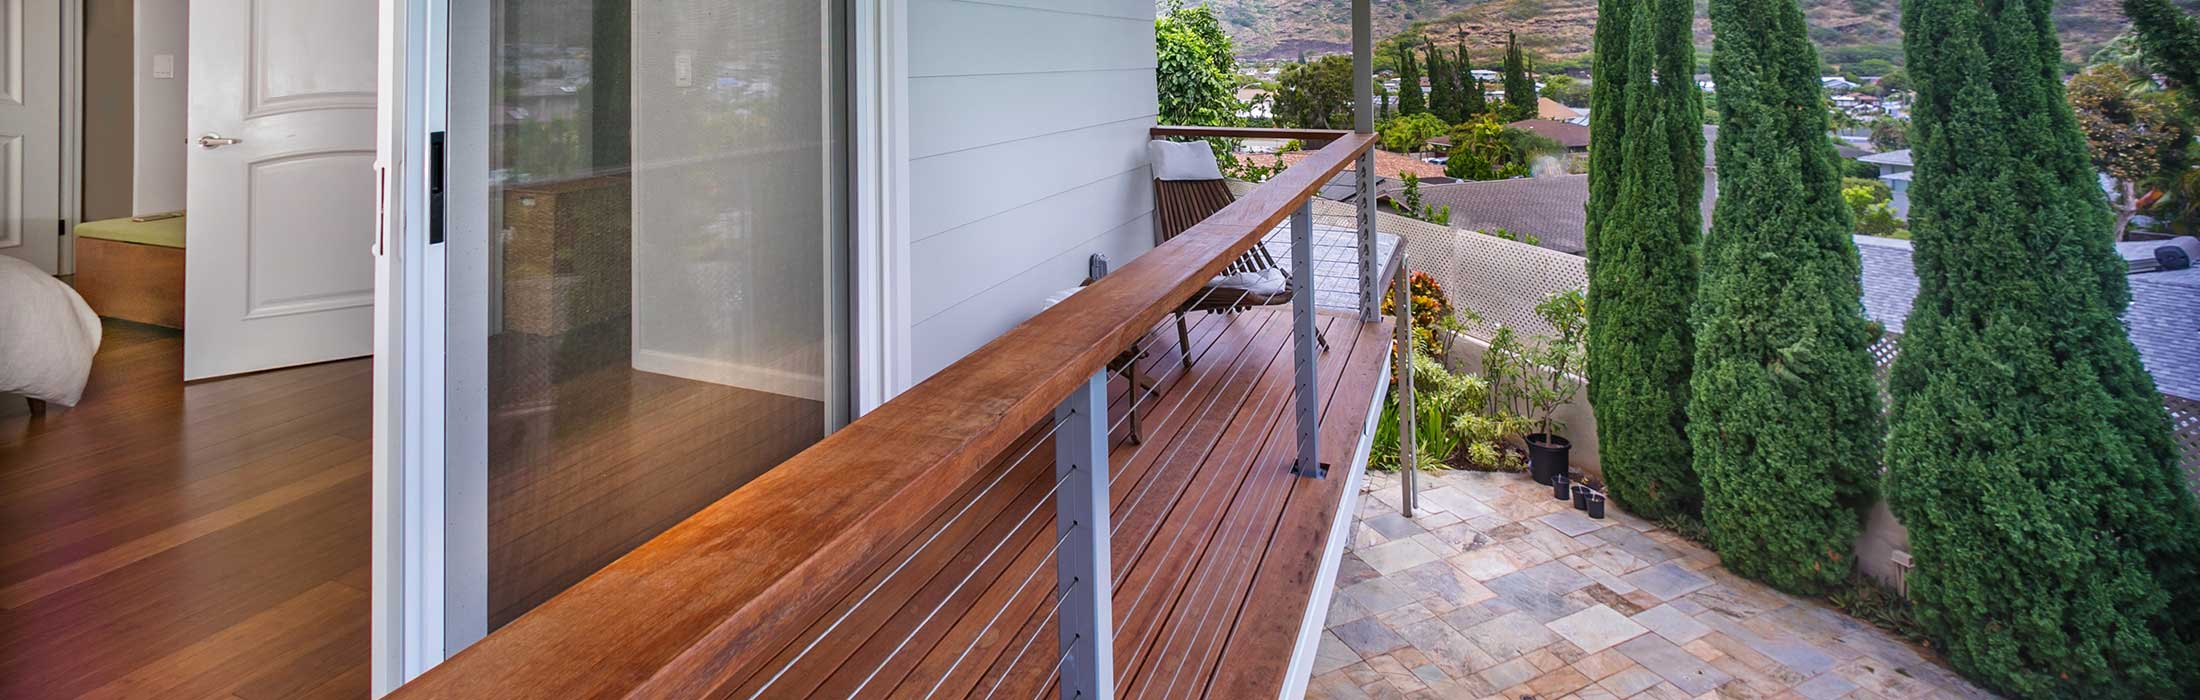 image of decking on home